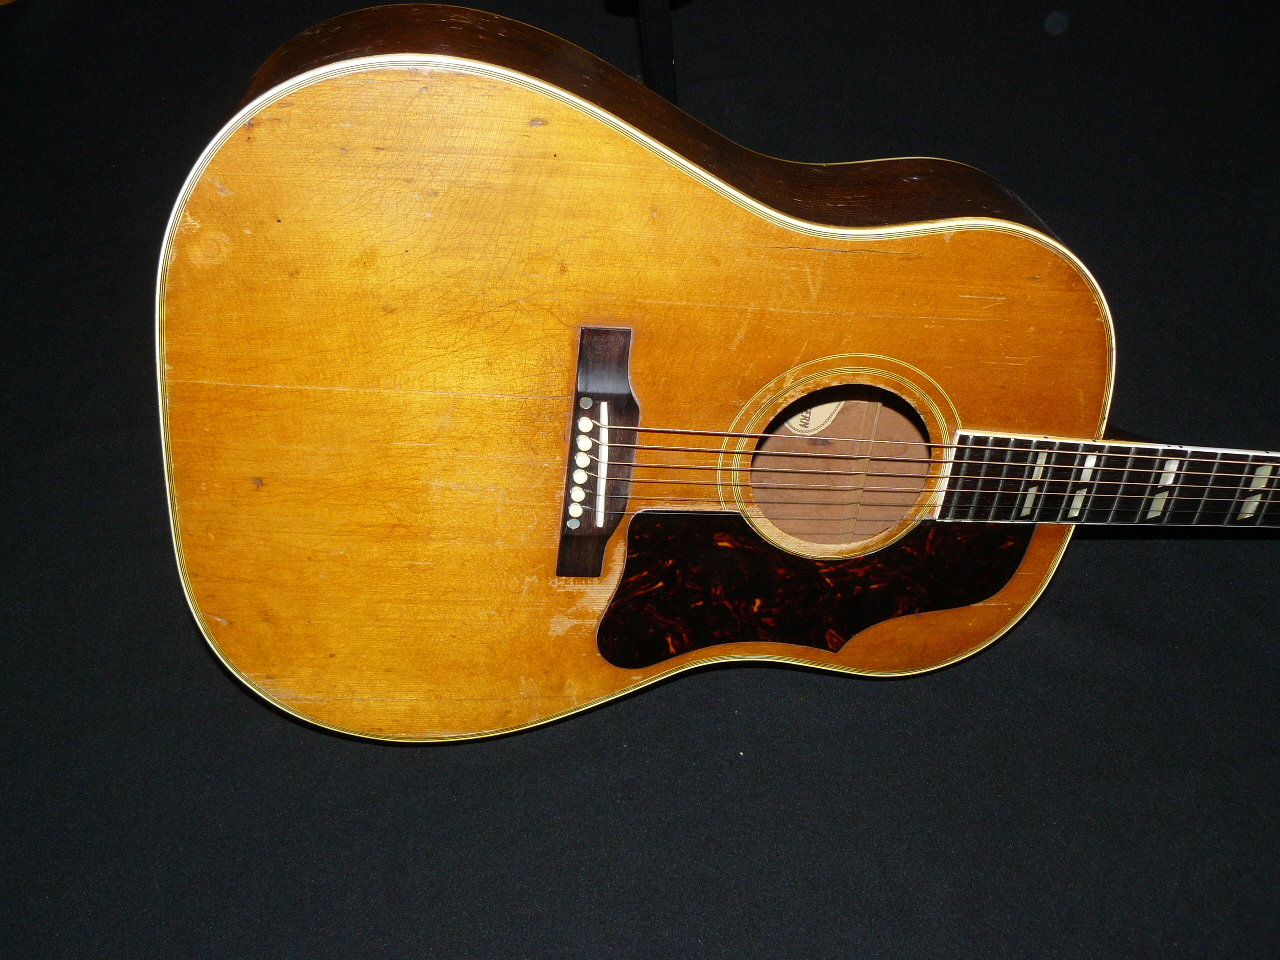 1960 s Vintage Guitars - m Pictures of country guitars